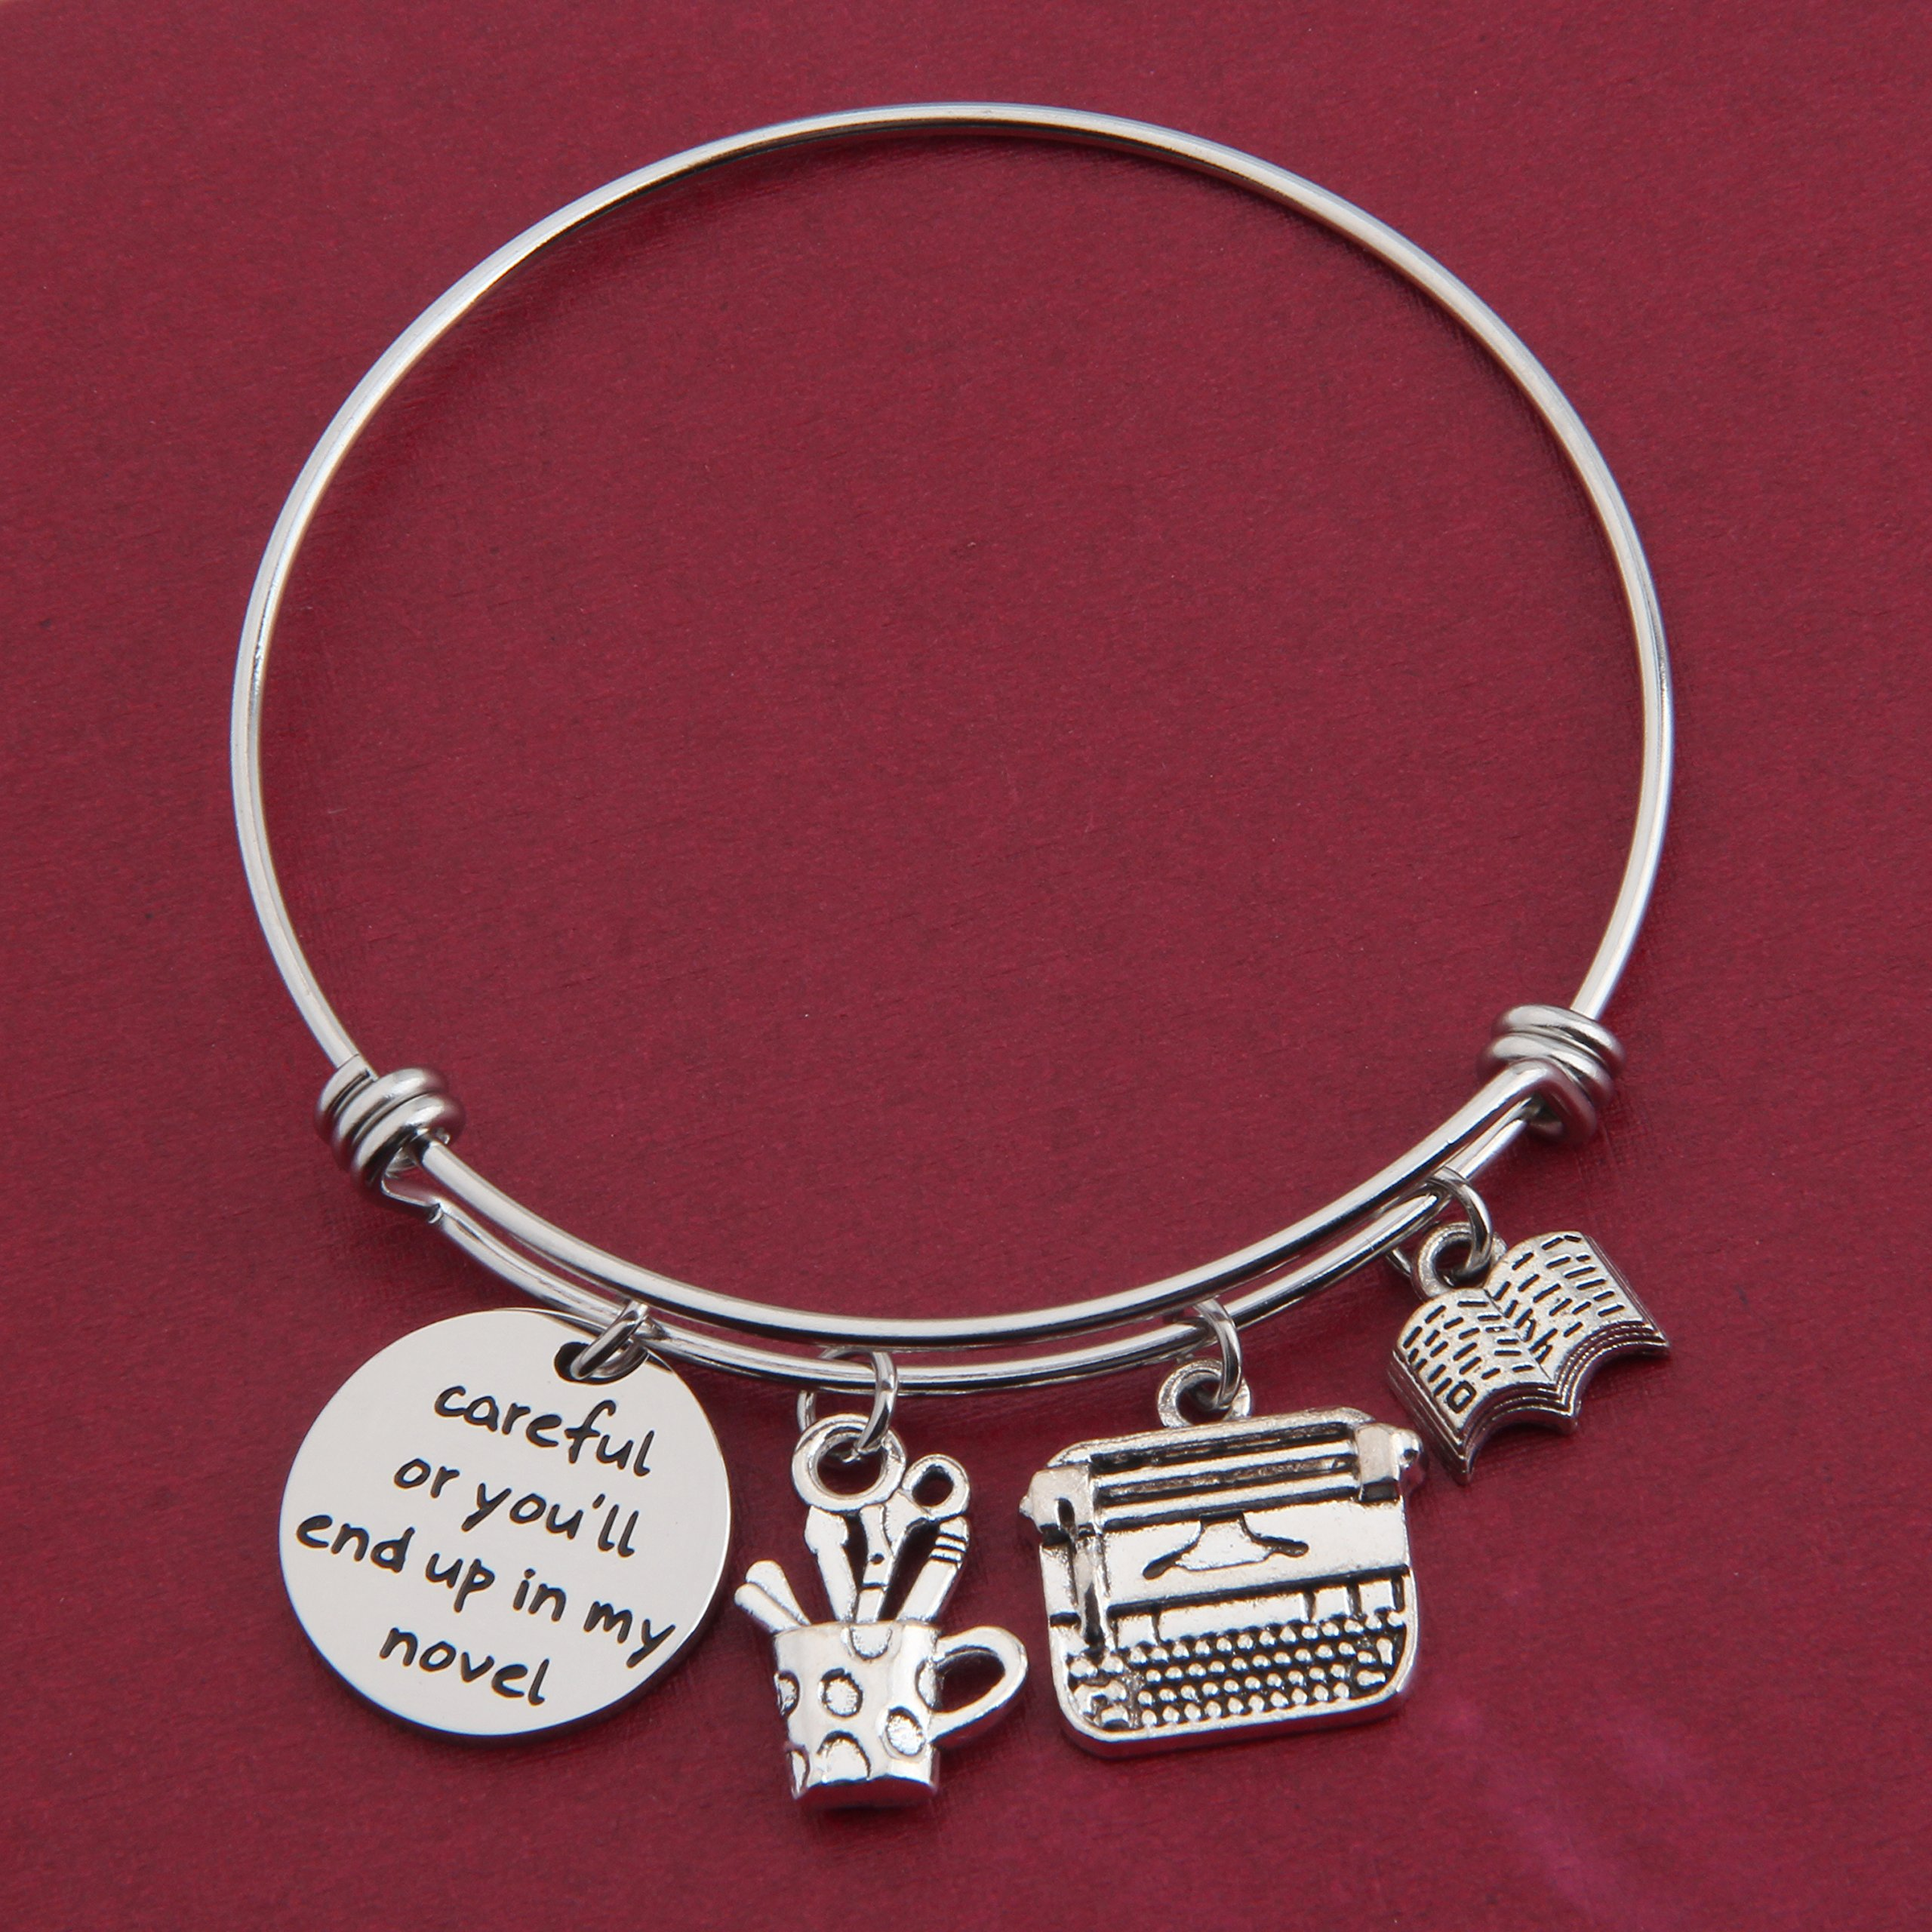 Gzrlyf Writer Bracelet Author Bracelet Writer Gift Novelist Gift Careful Or Youll End Up In My Novel Jewelry Writing Gift Author Jewelry (Writer bracelet) by Gzrlyf (Image #3)